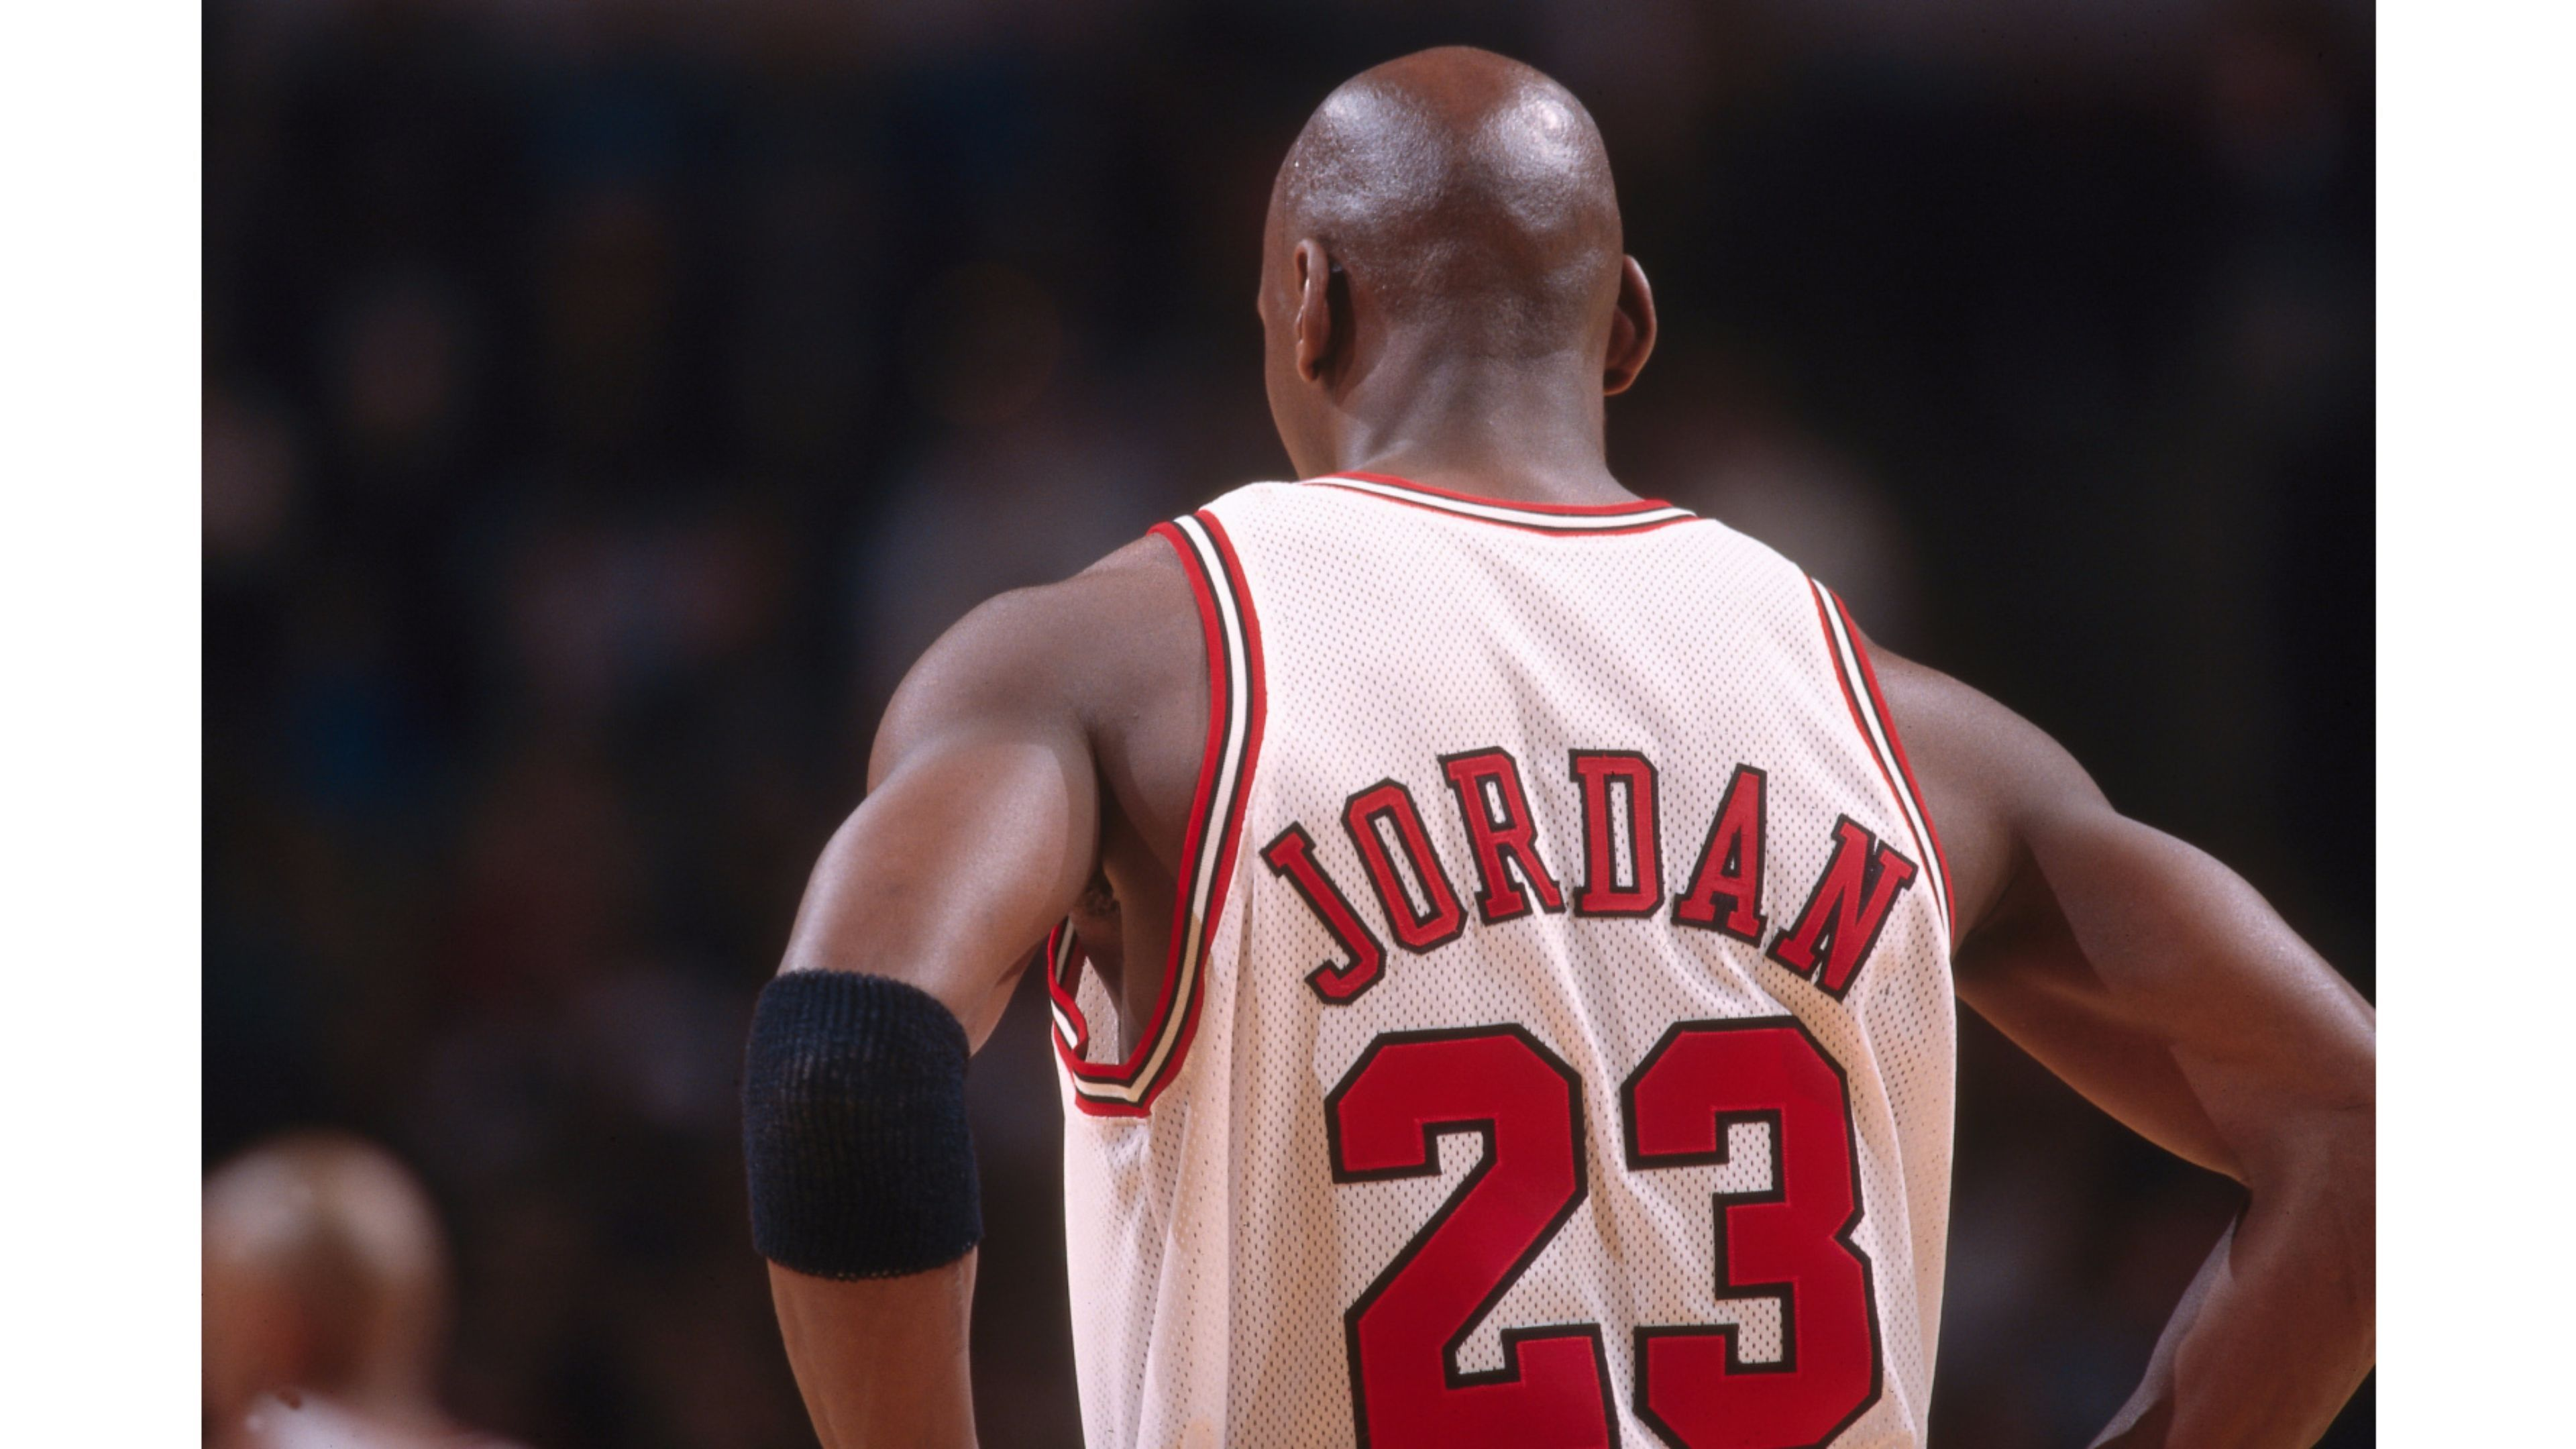 Jordan 23 Michael Jordan 4K Wallpaper Download Wallpaper